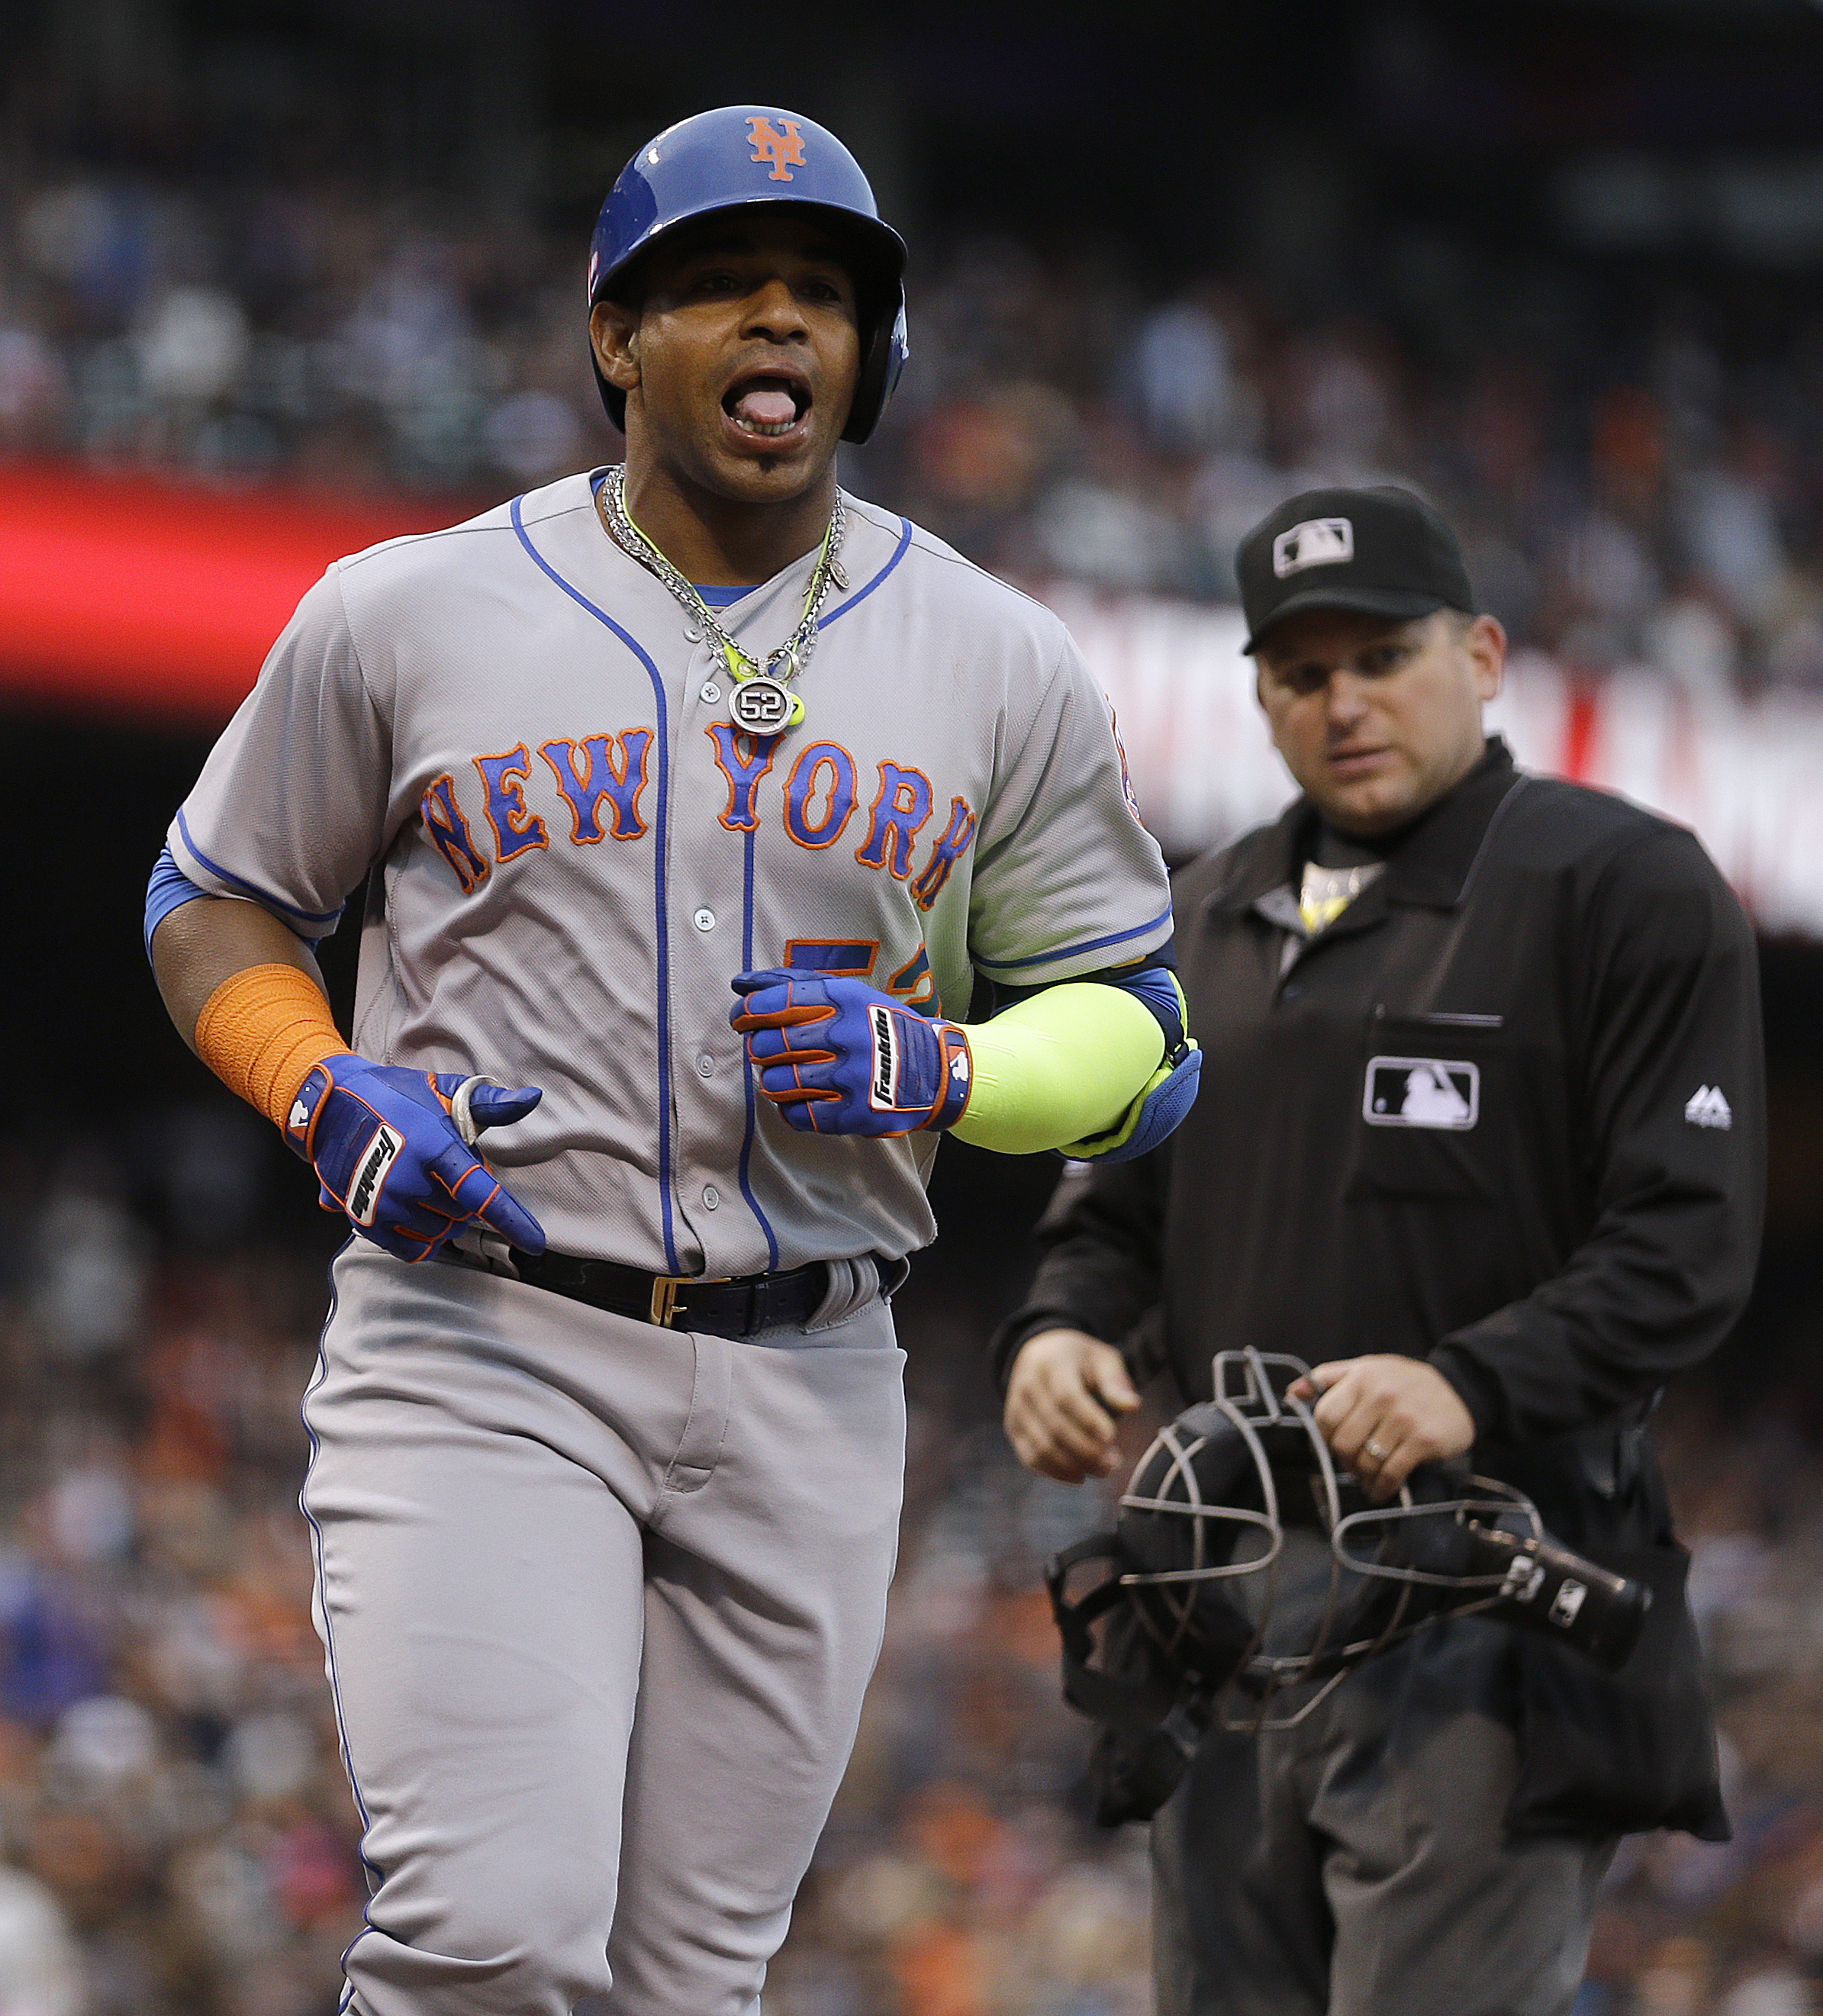 Home plate umpire Clint Fagan, right, watches as New York Mets' Yoenis Cespedes celebrates after hitting a two run home run off San Francisco Giants' Jeff Samardzija in the seventh inning of a baseball game Sunday, Aug. 21, 2016, in San Francisco. (AP Pho